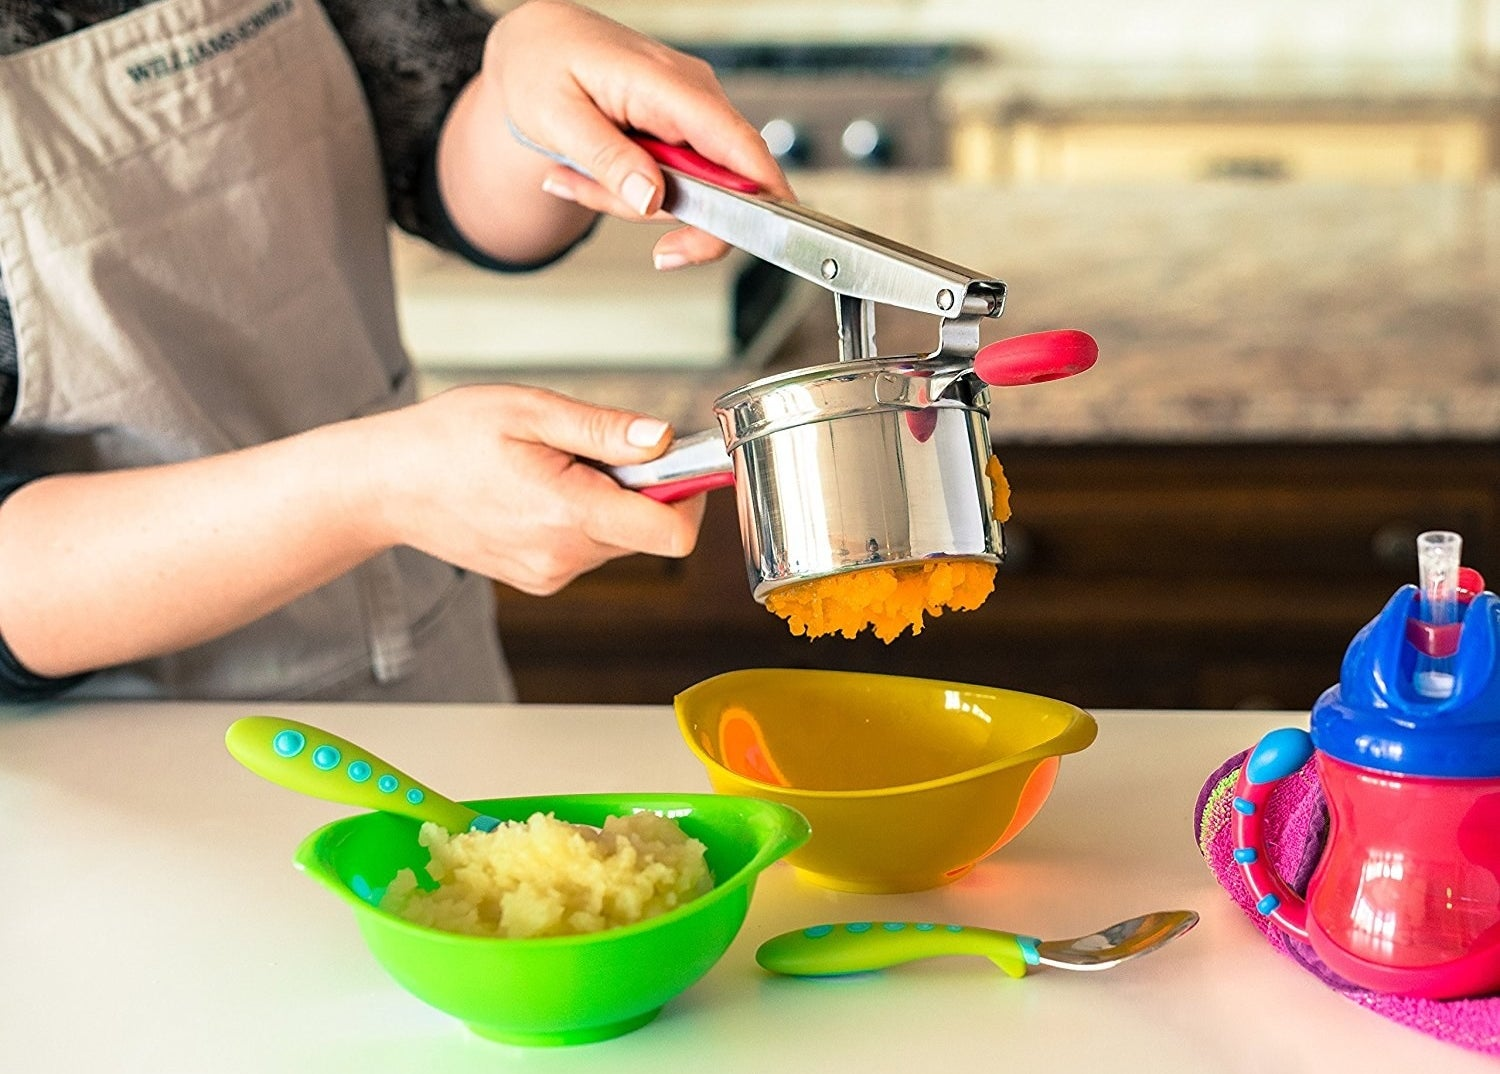 """This is dishwasher-safe!Promising review: """"I love this ricer. I'm not sure how I have lived this long without it!!! Very easy to use, makes perfect riced potatoes and vegetables every time (love the three disc sizes), and just gets tossed into the dishwasher. You will be as happy with this ricer as I am!!"""" —Amazon CustomerGet it from Amazon for $18.95 (originally $34.99)."""